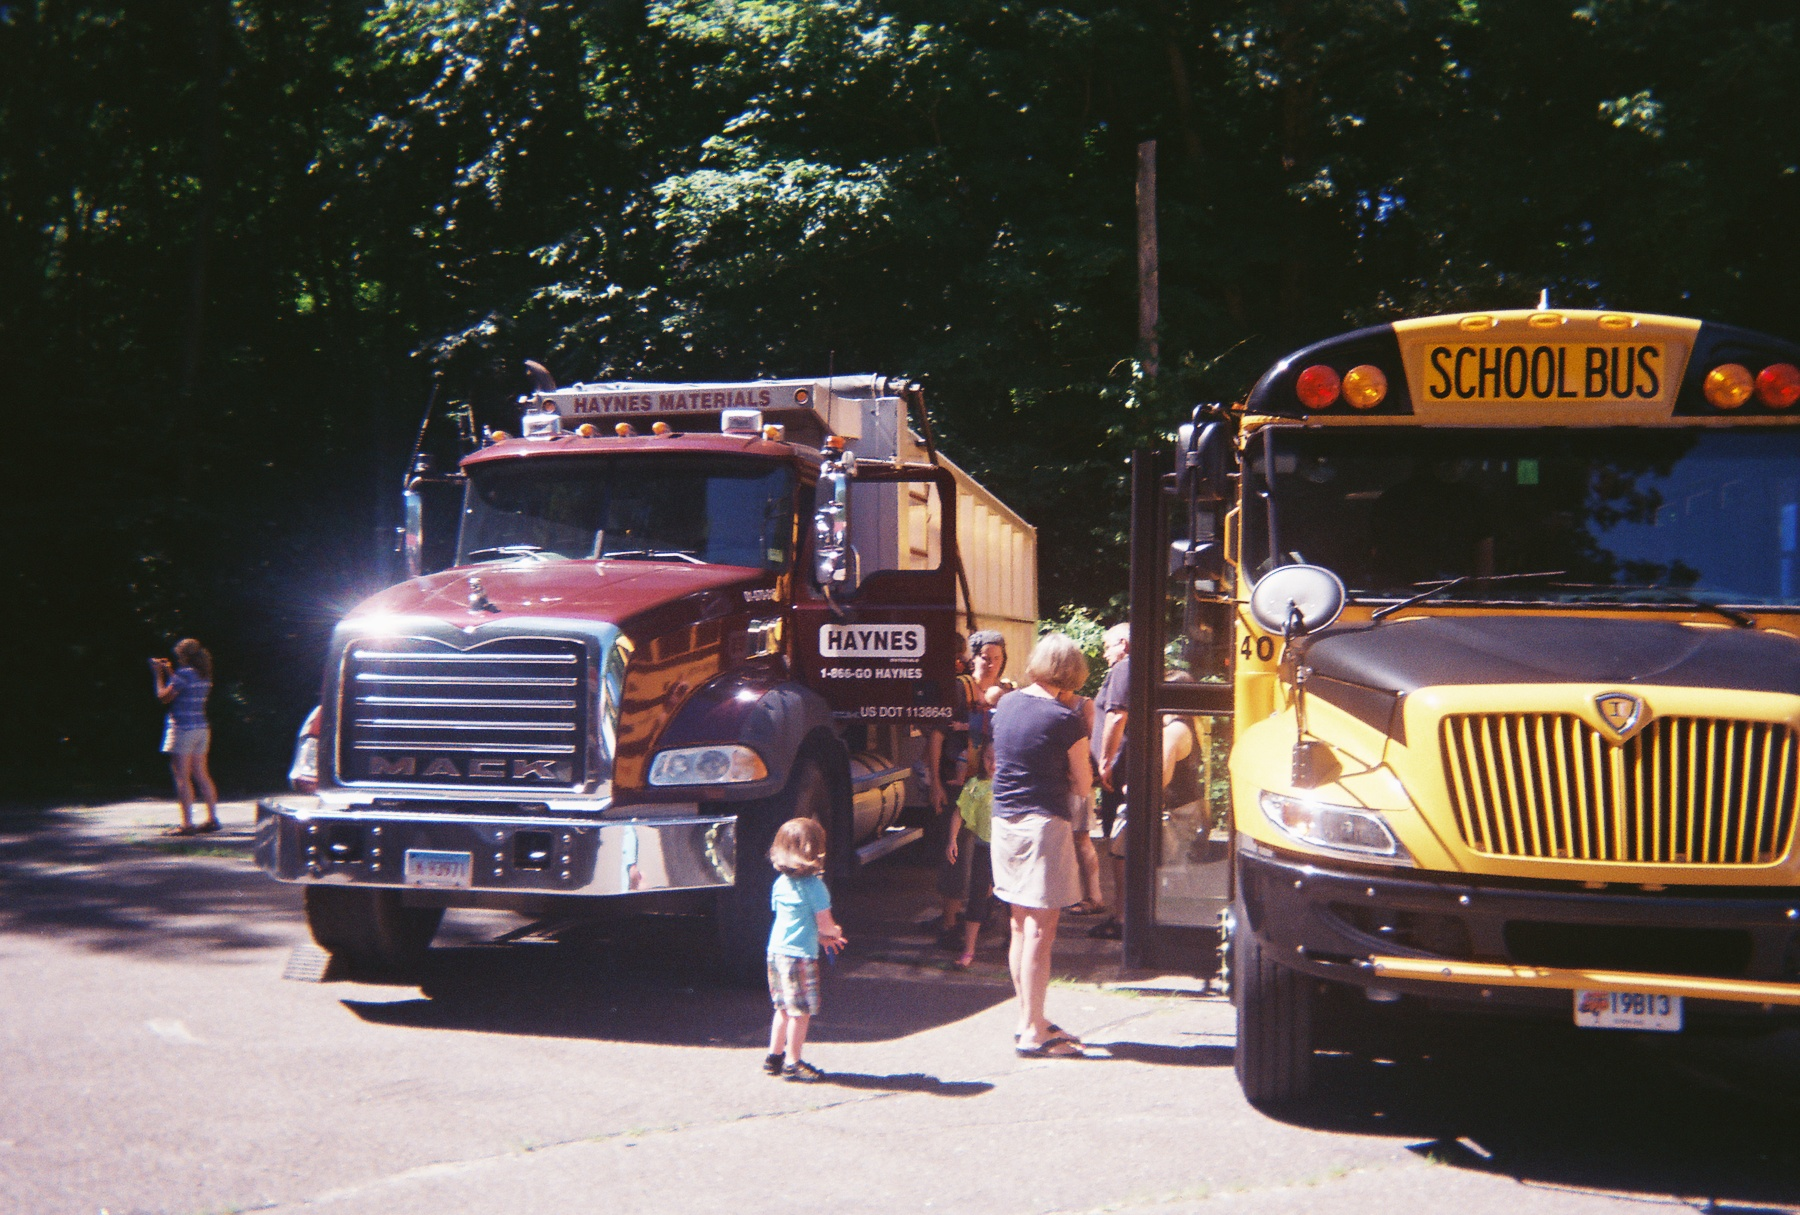 Touch-a-truck at UMC